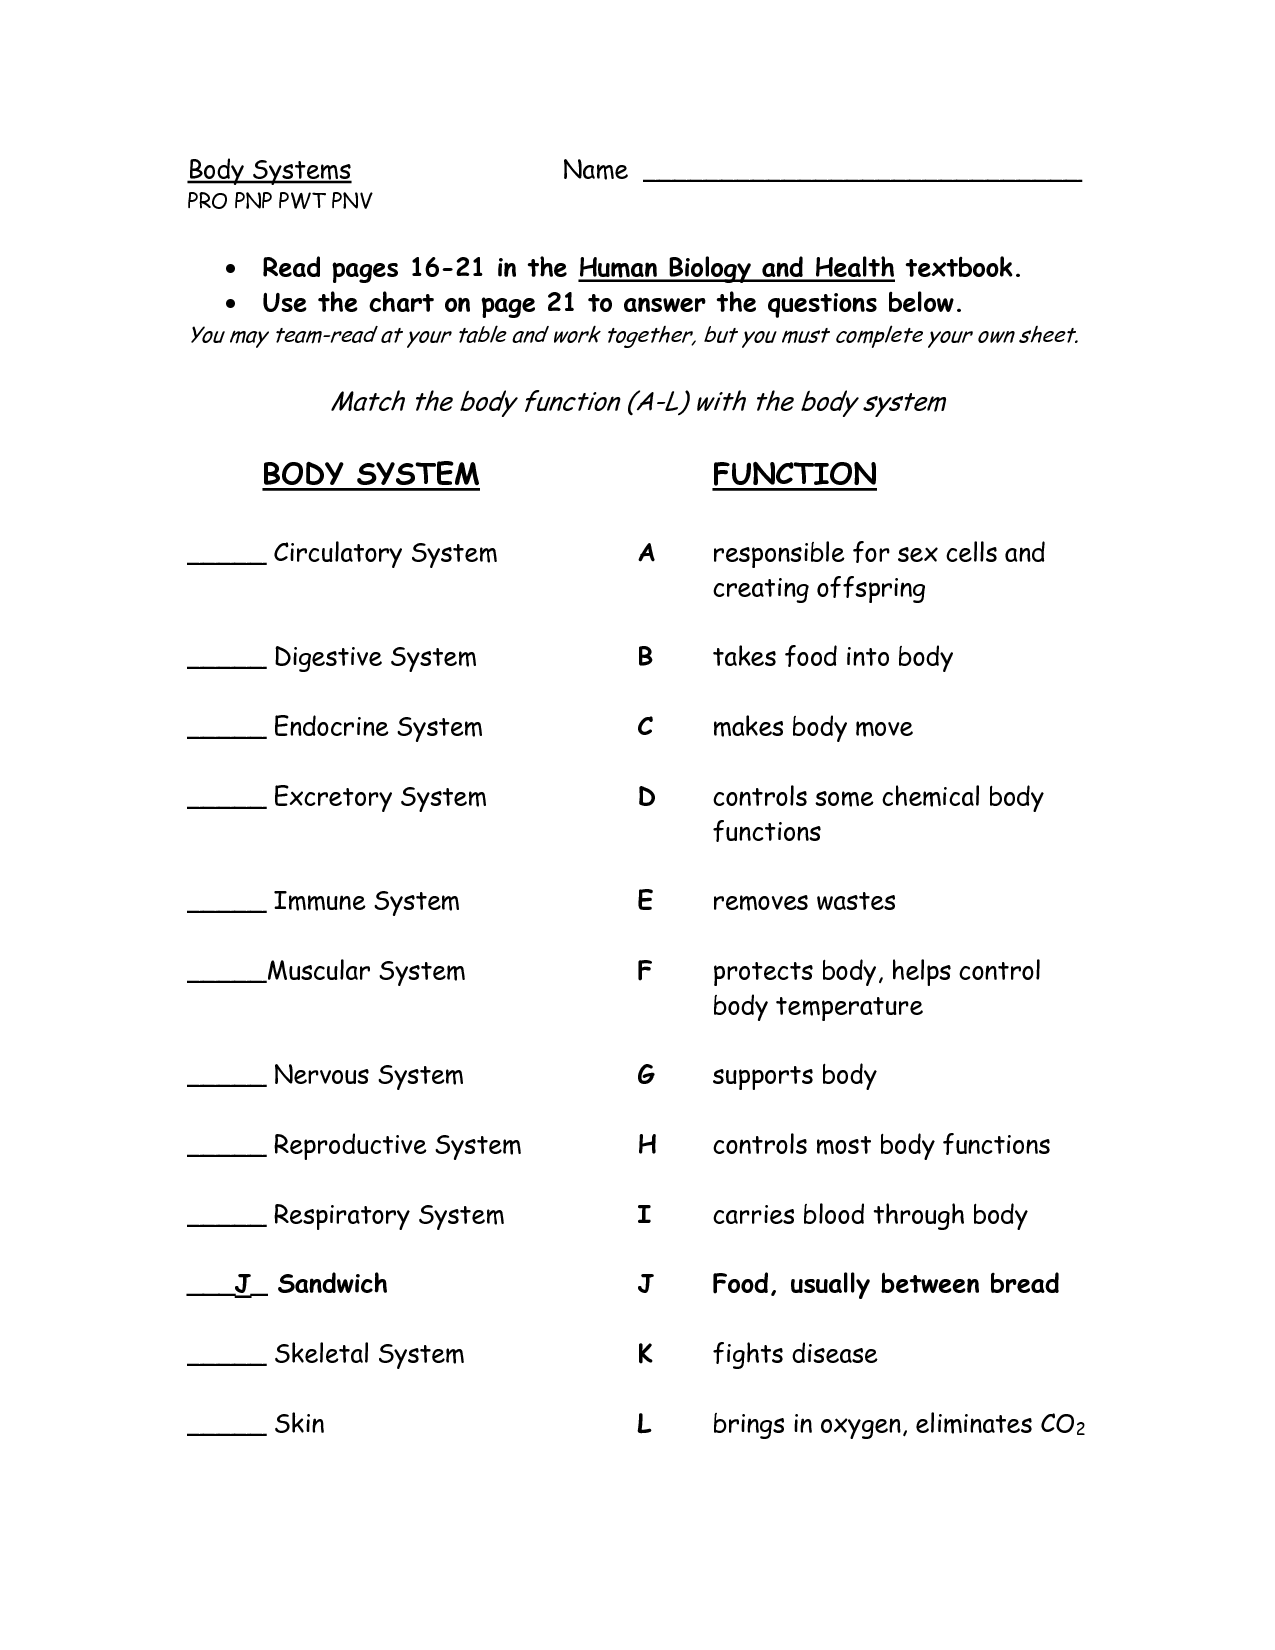 Worksheets Body Systems Worksheets body systems and functions worksheets instructional activities worksheets